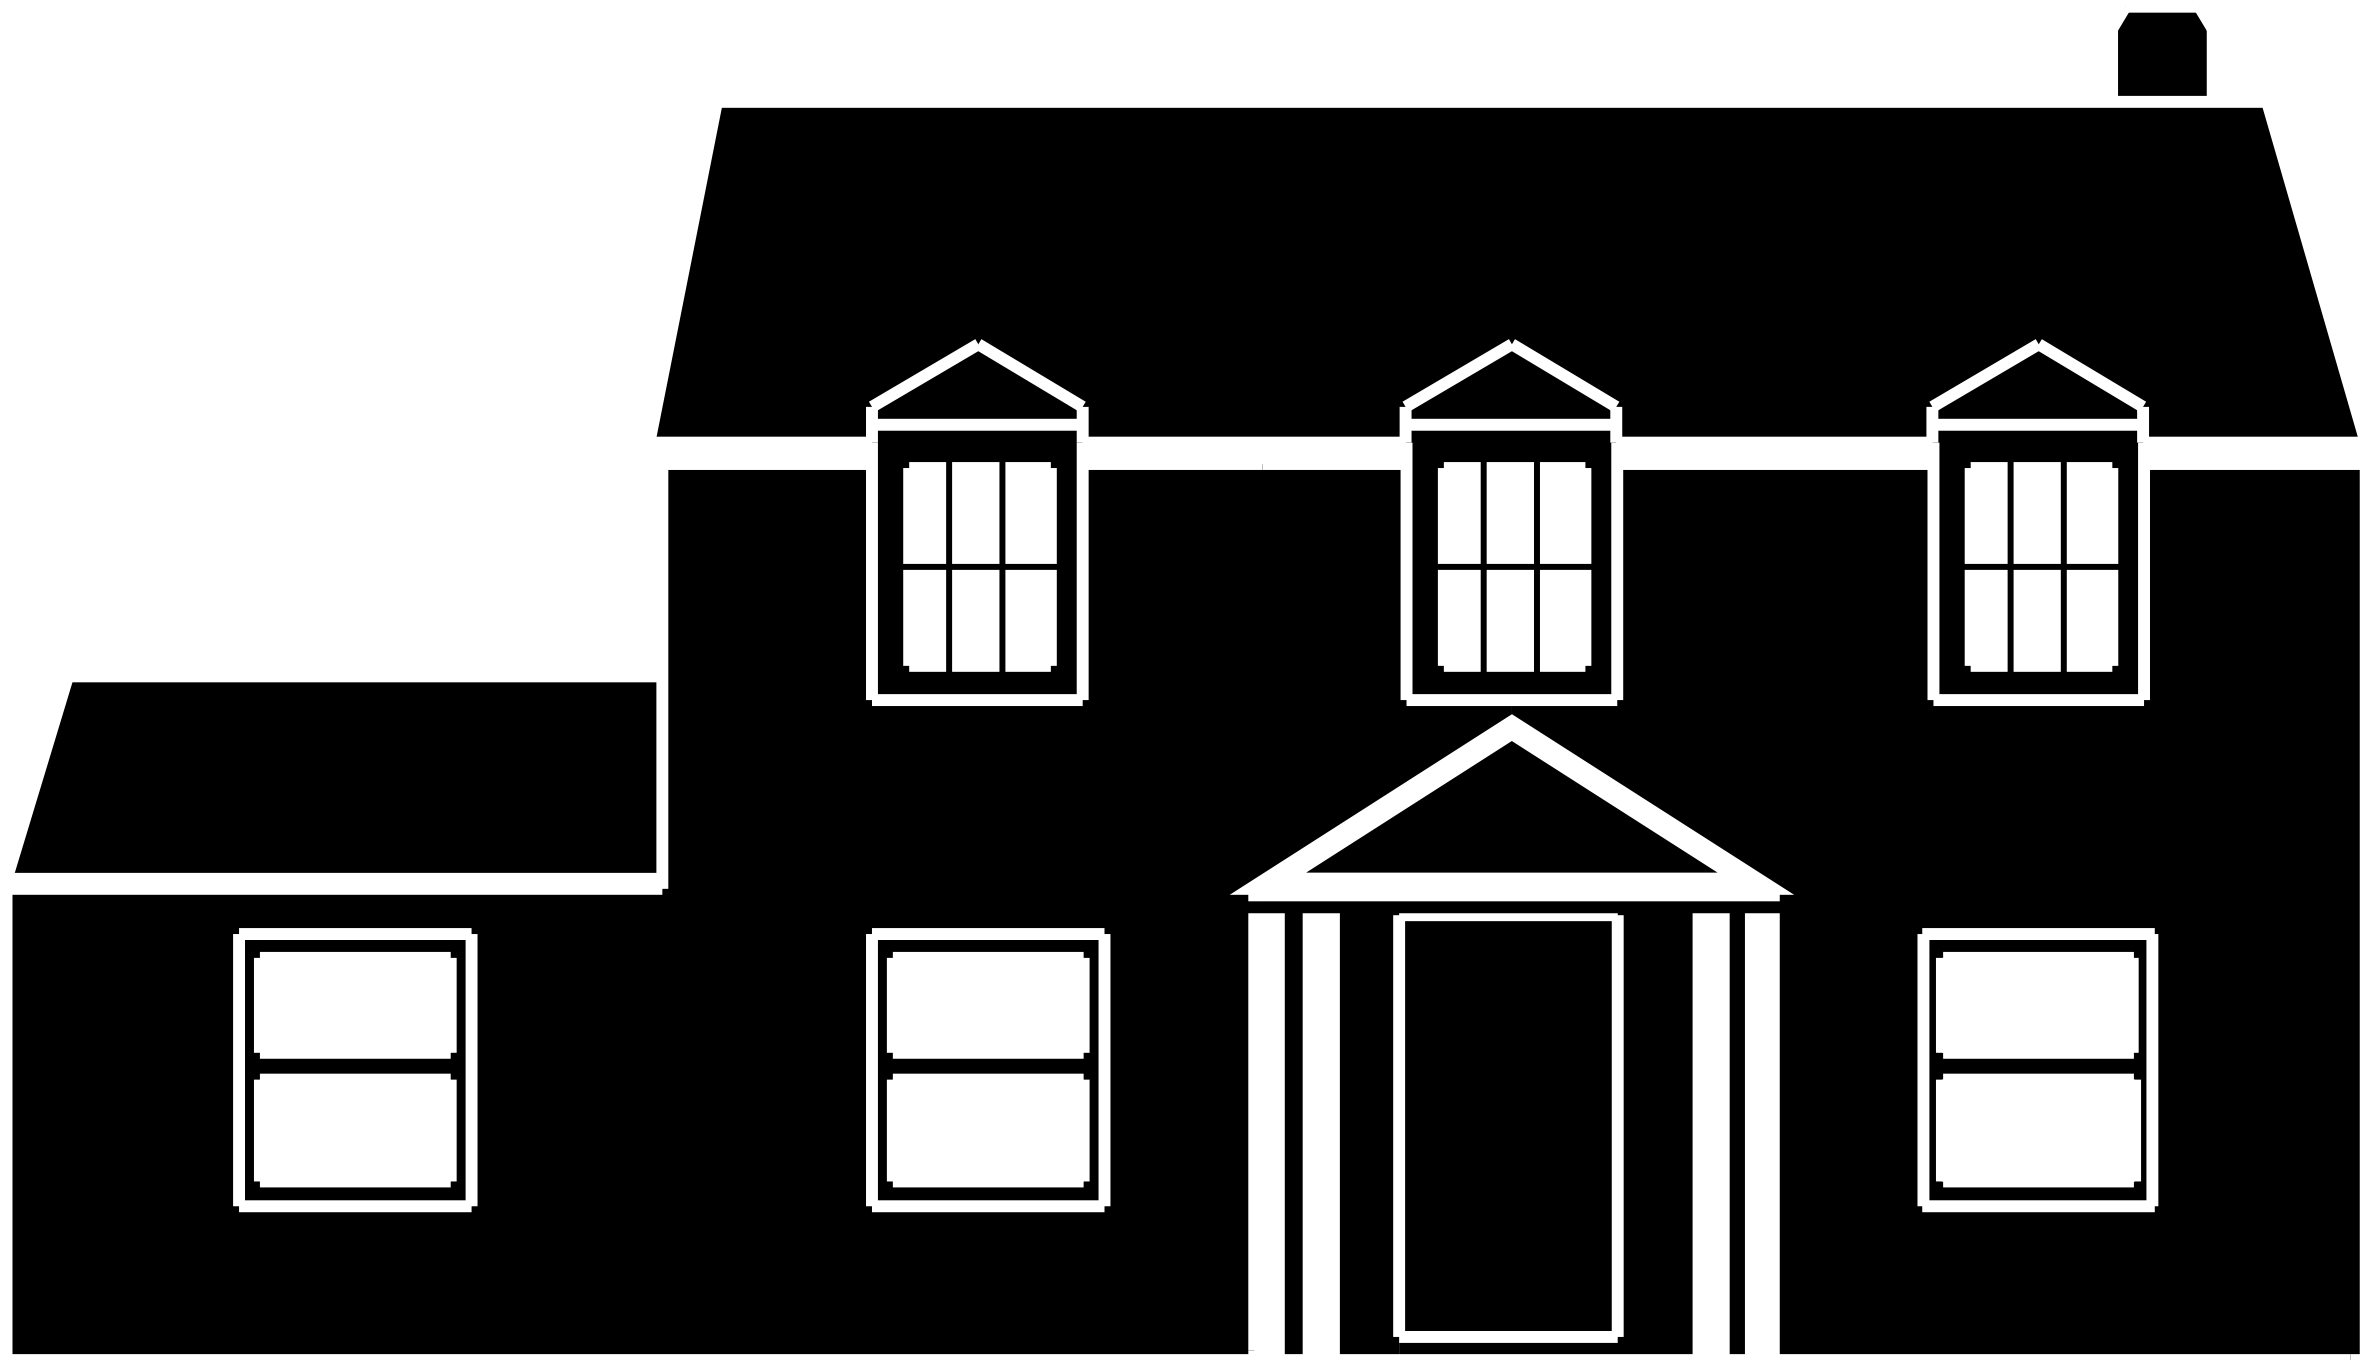 image royalty free Mansion clipart. Lovely home free on.